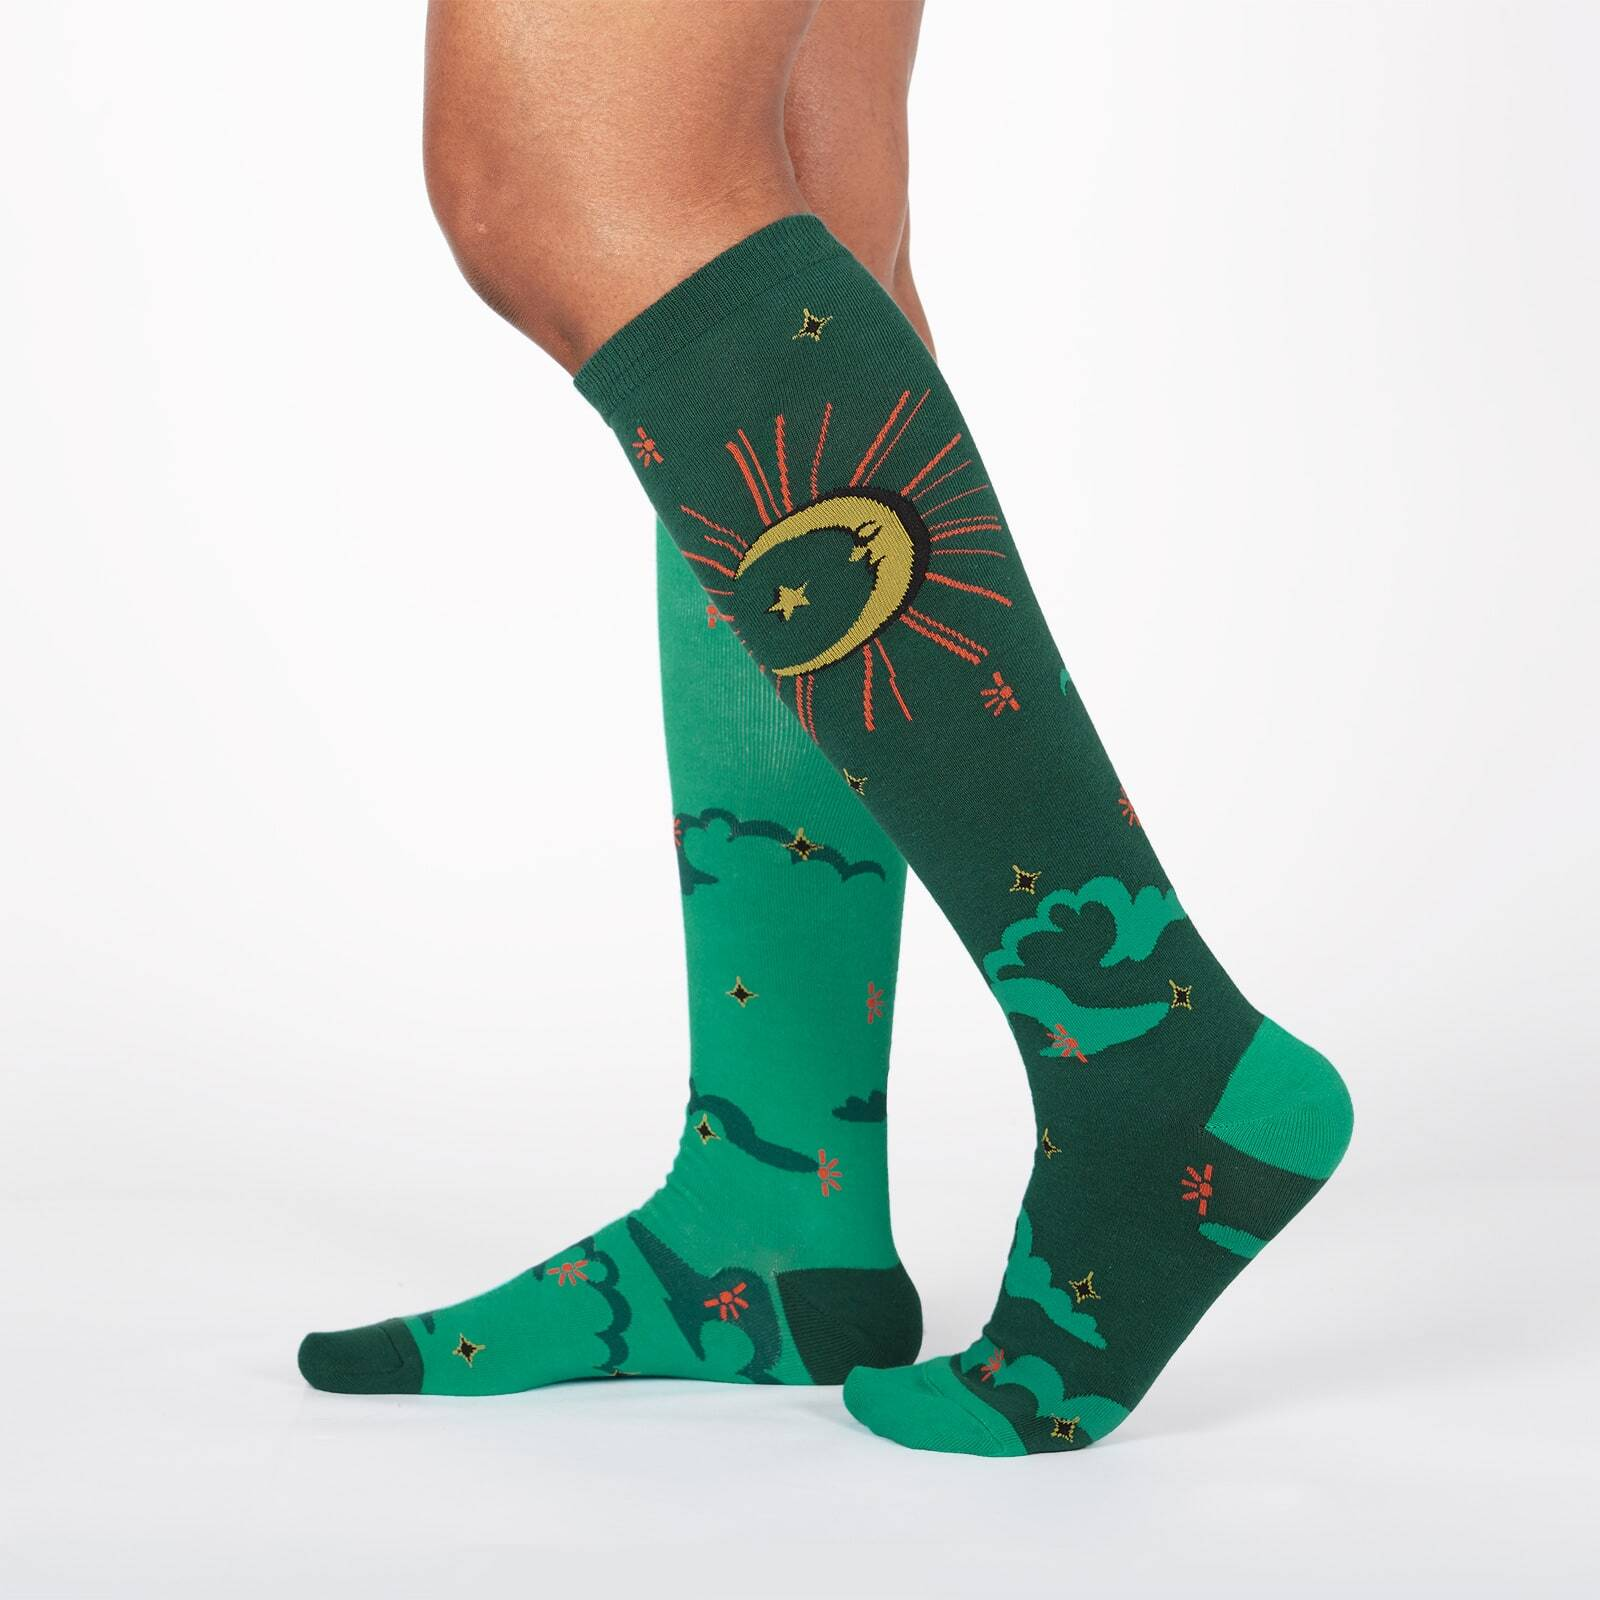 model wearing Sun And Moon - Sparkling Sun and Moon Knee High Socks Green - Women's